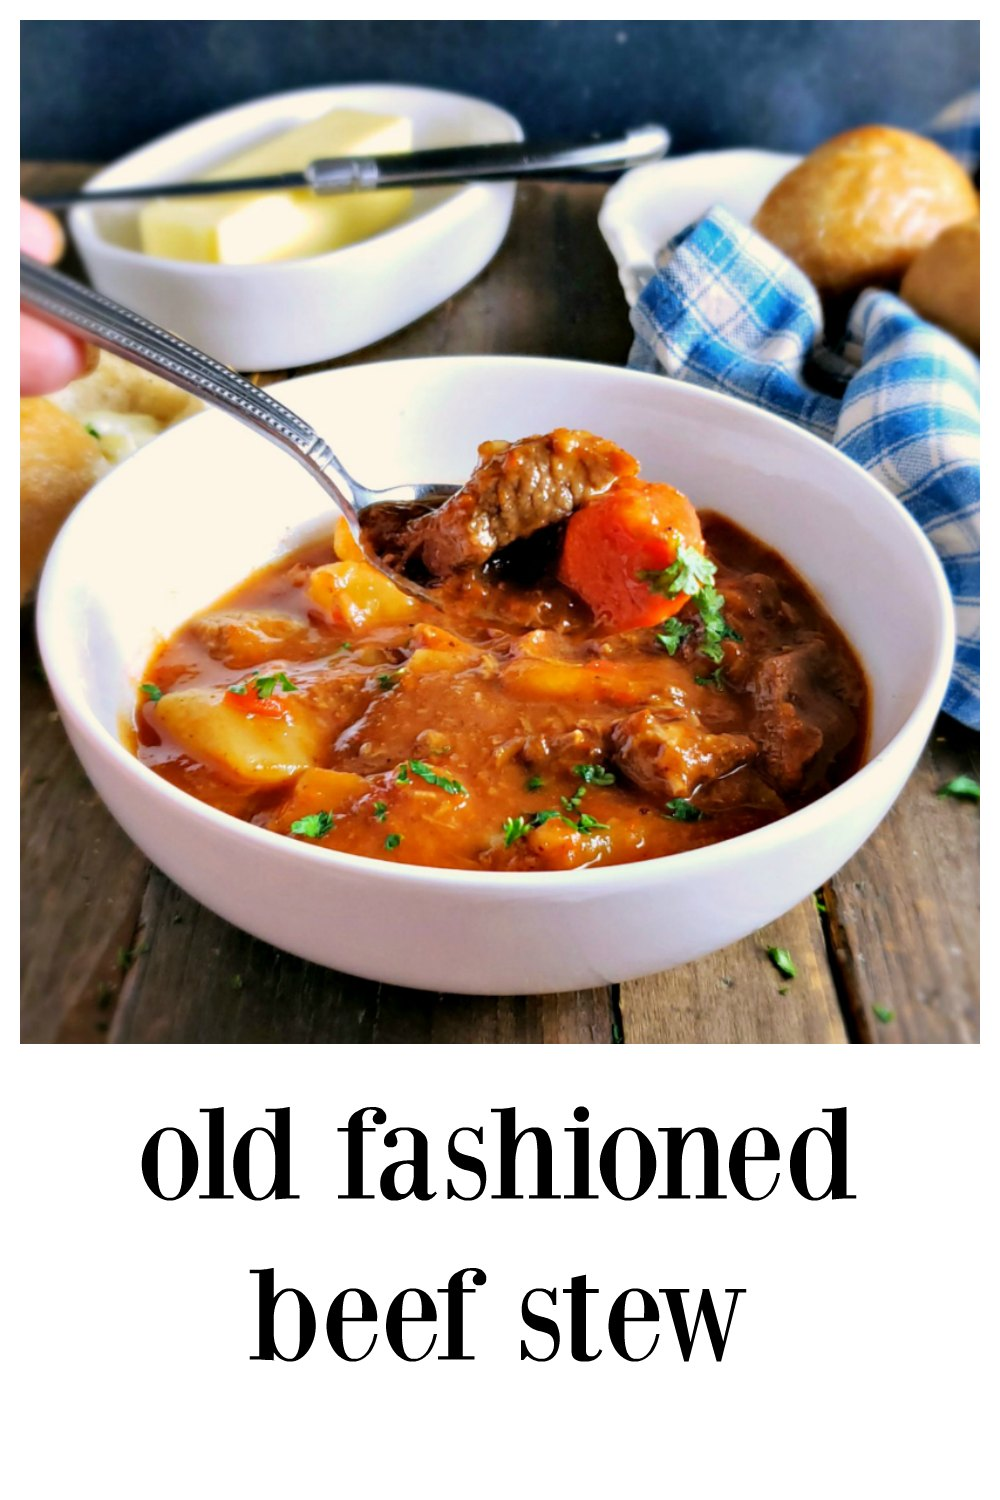 This is a truly Old Fashioned Beef Stew, sometimes called Five Hour Stew. It's low and slow old fashioned cooking. It's like coming home! Simple flavors, no effort to make! #ClassicBeefStew #OldFashionedBeefStew #FiveHourStew #SimpleBeefStew #BeefStew